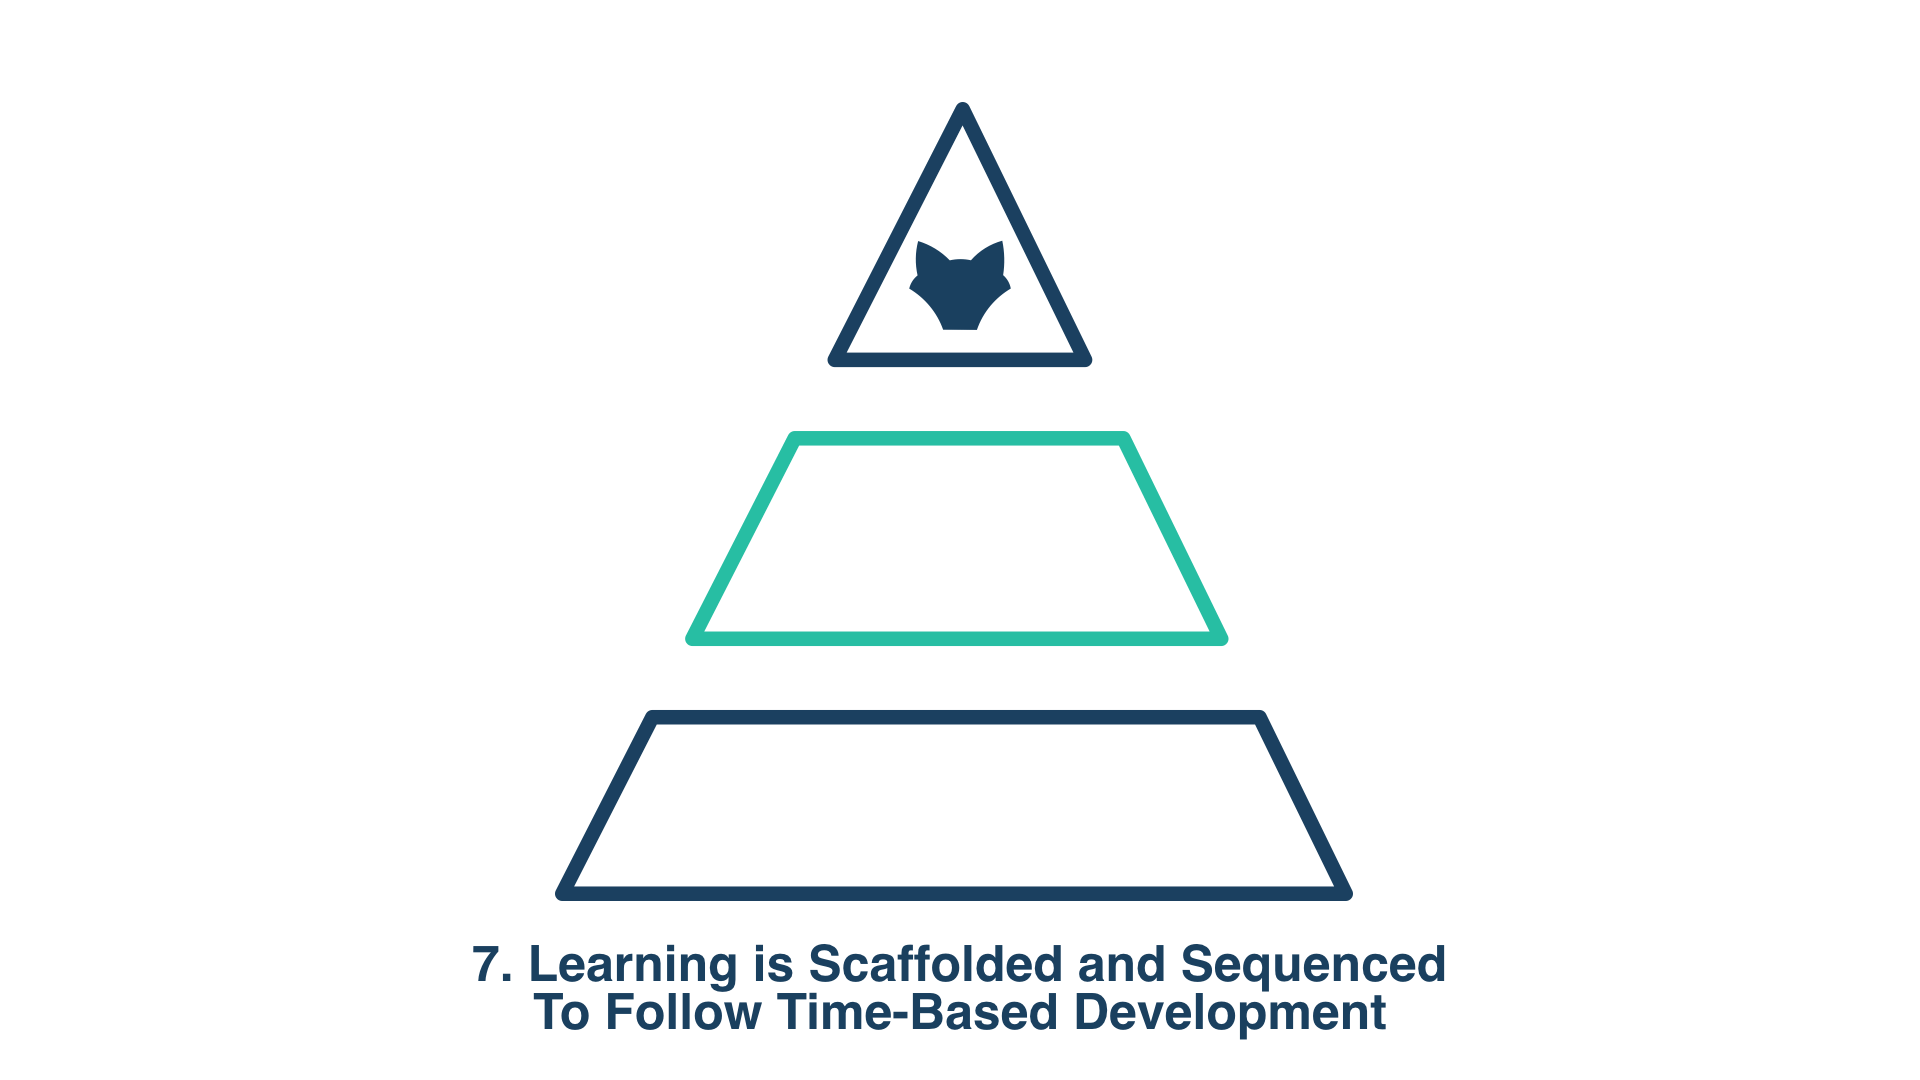 7. Learning is Scaffolded and Sequenced To Follow Time-Based Development